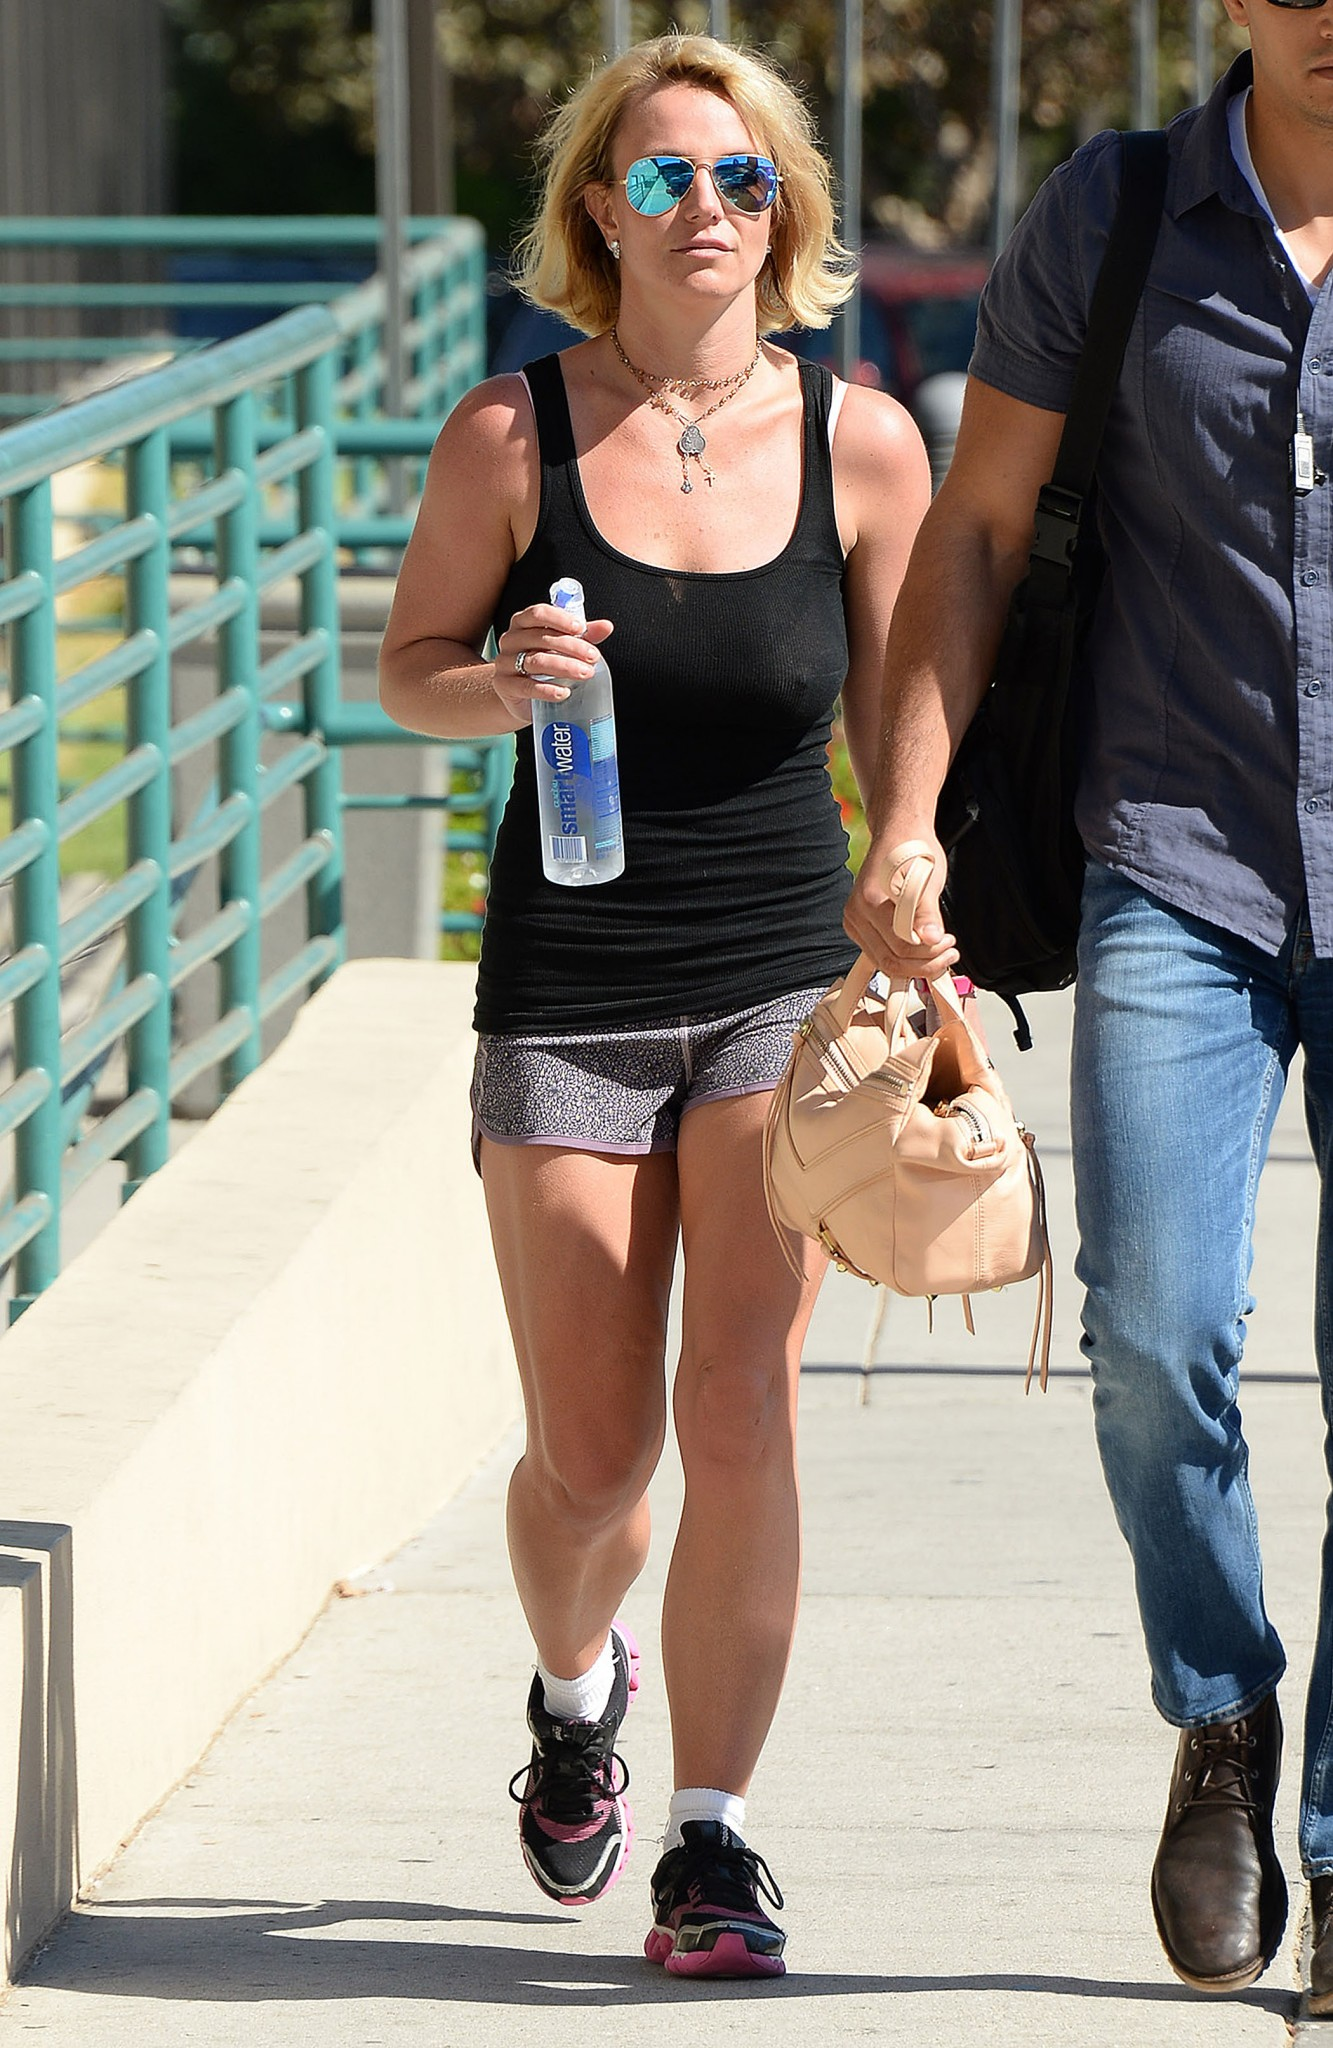 britney-spears-hard-nipples-after-leaving-gym-1.jpg